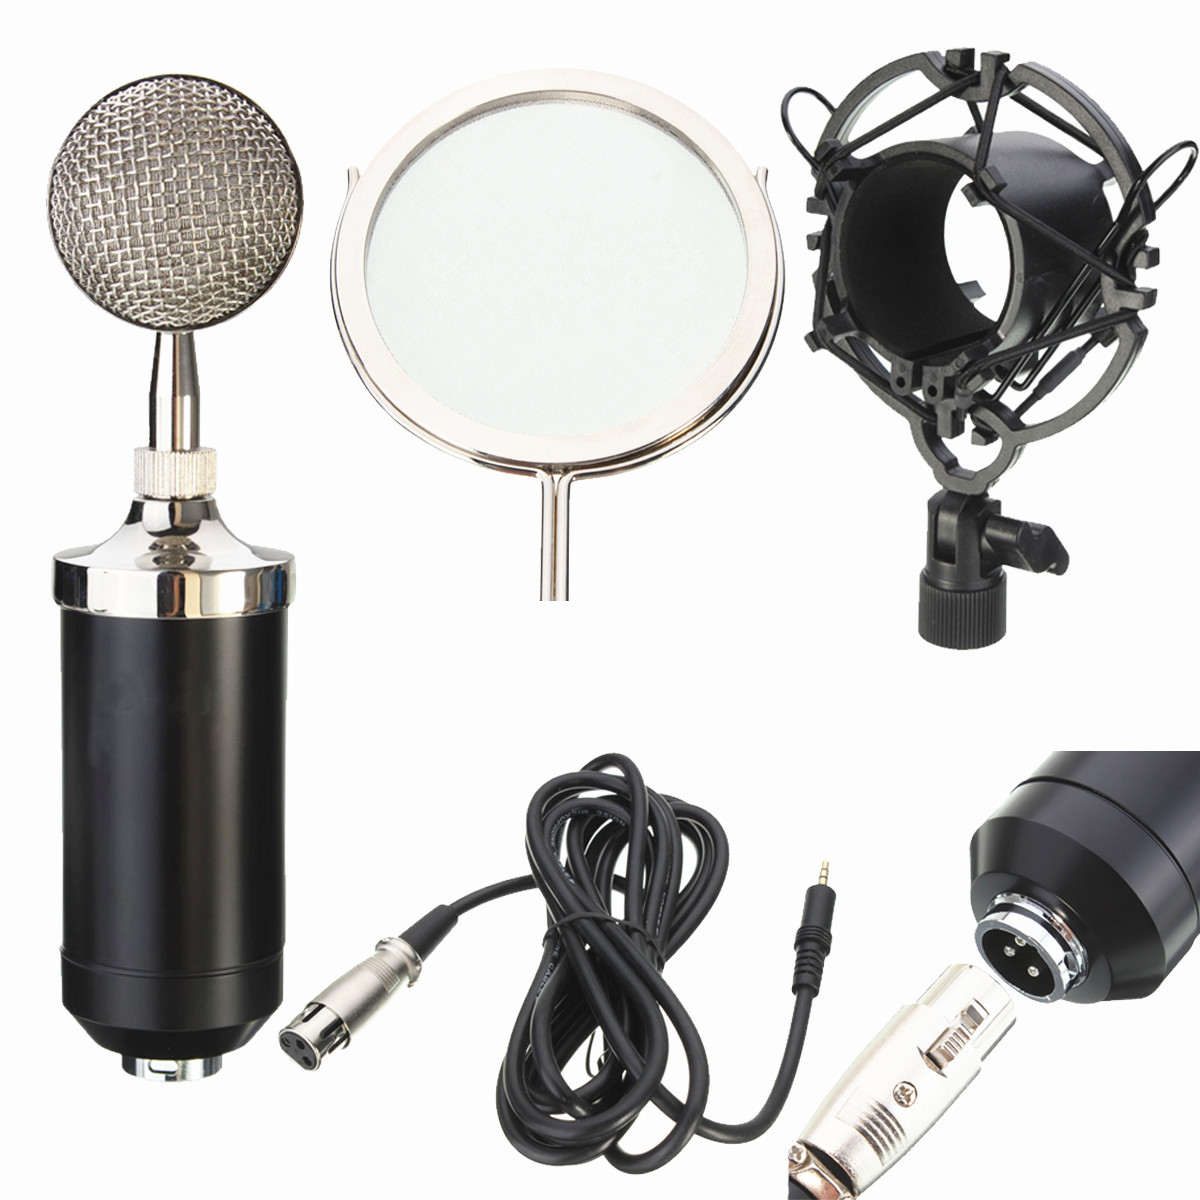 IRIN 3.5mm Professional Sound Studio Recording Microphone Network Singing Podcast Mic Plus Stand Holder Filter Live Equipment